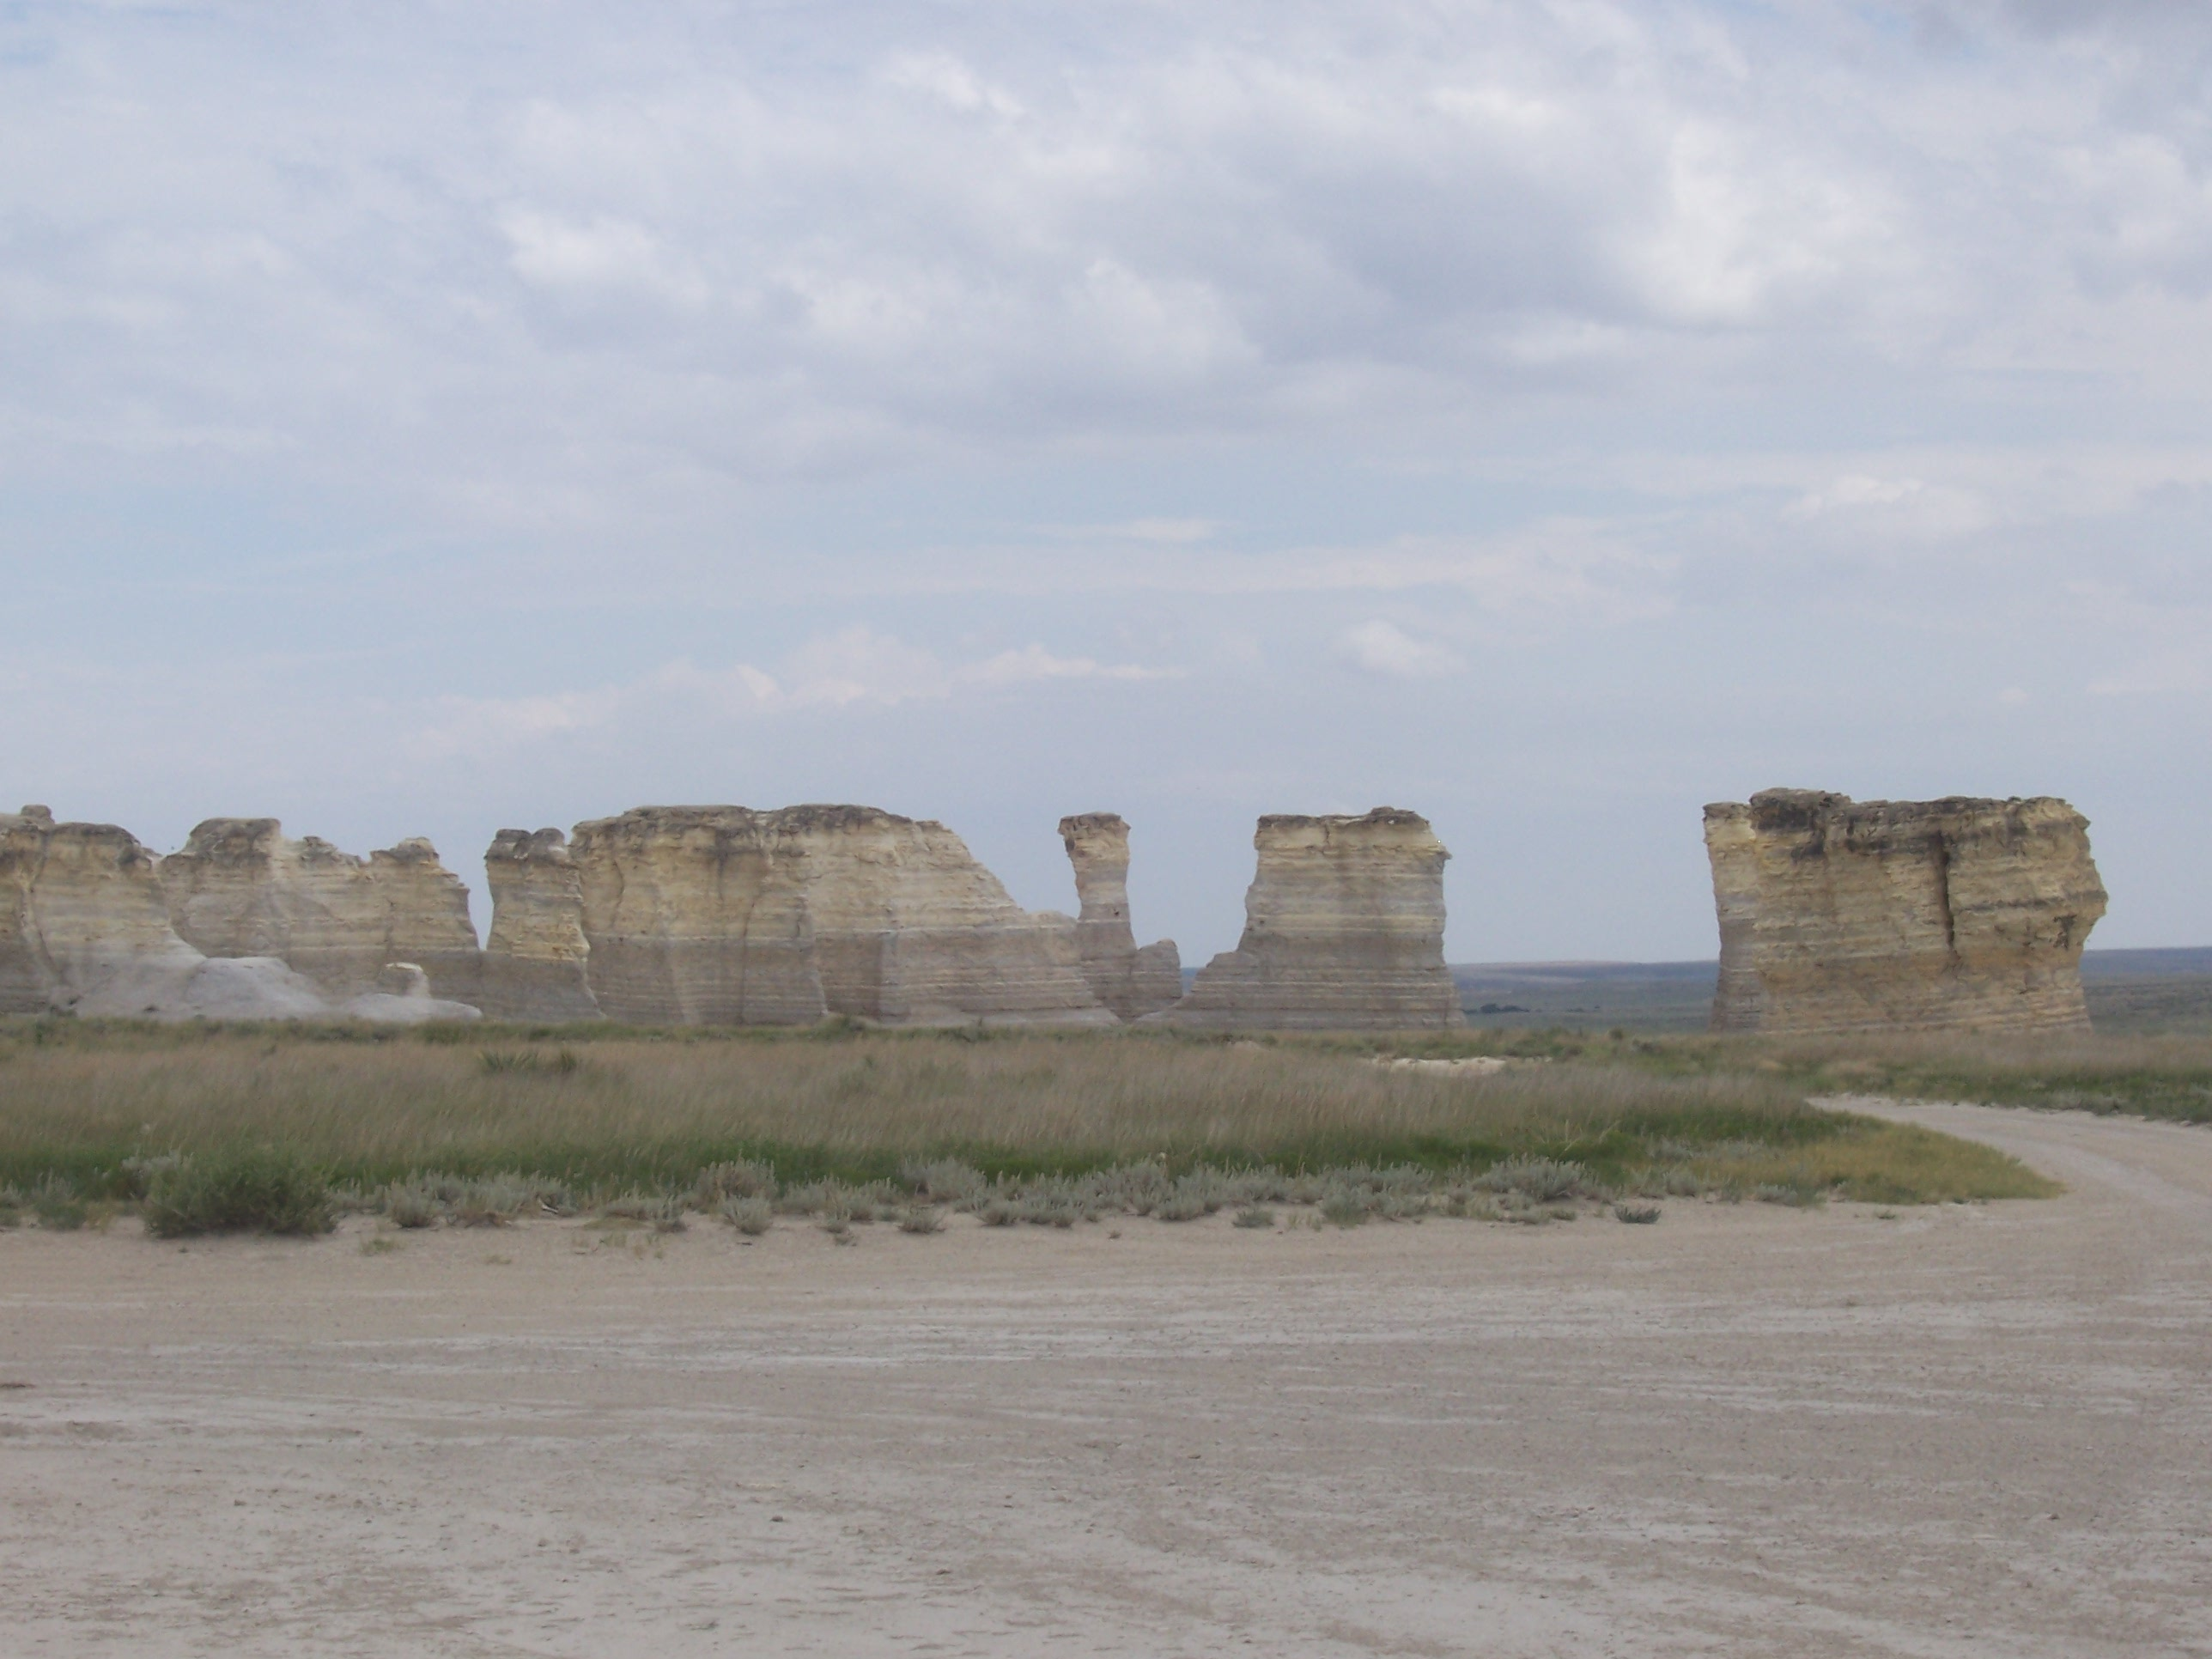 Kansas gove county grinnell - Louise Speaks In Patricia S Book 1000 Places To See Before You Die She Has This Listed As The Niobrara Chalk Mainly Because Of The Density Of The Rock